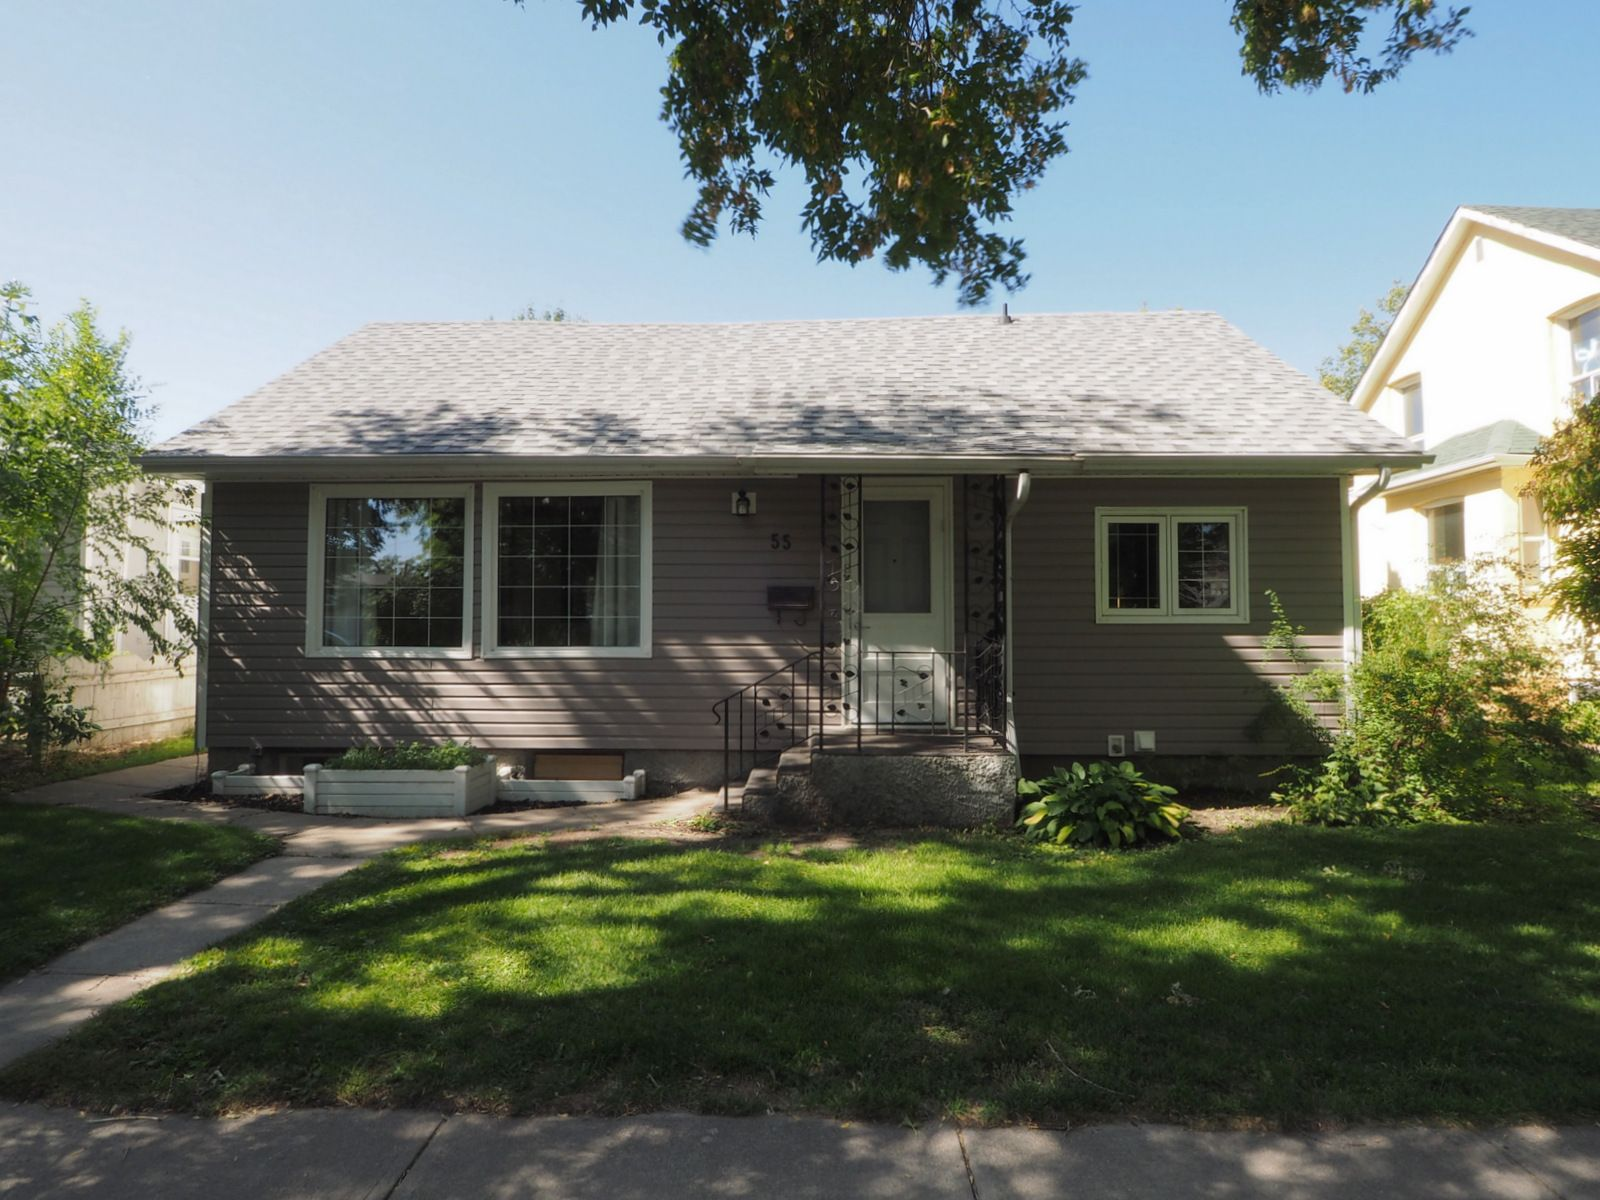 Main Photo: 55 3rd Street NW in Portage la Prairie: House for sale : MLS®# 202023274